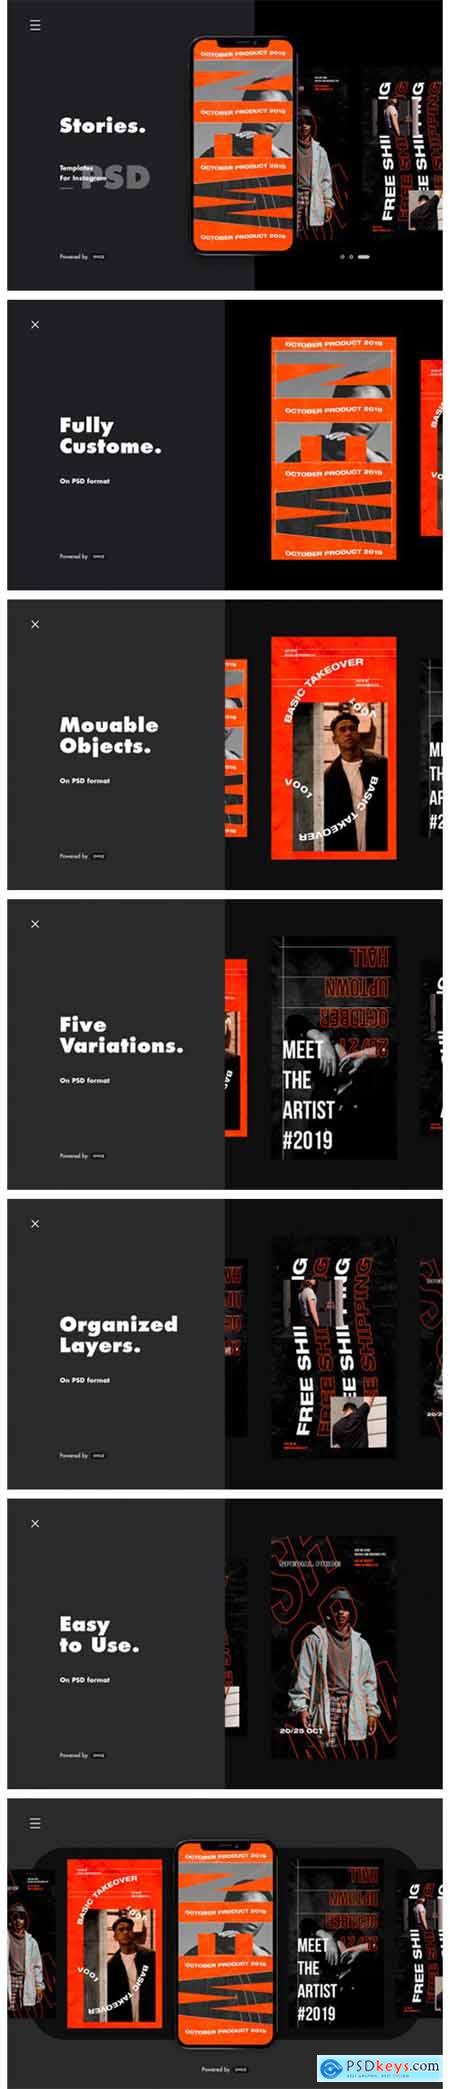 Instagram Story Template 1915857